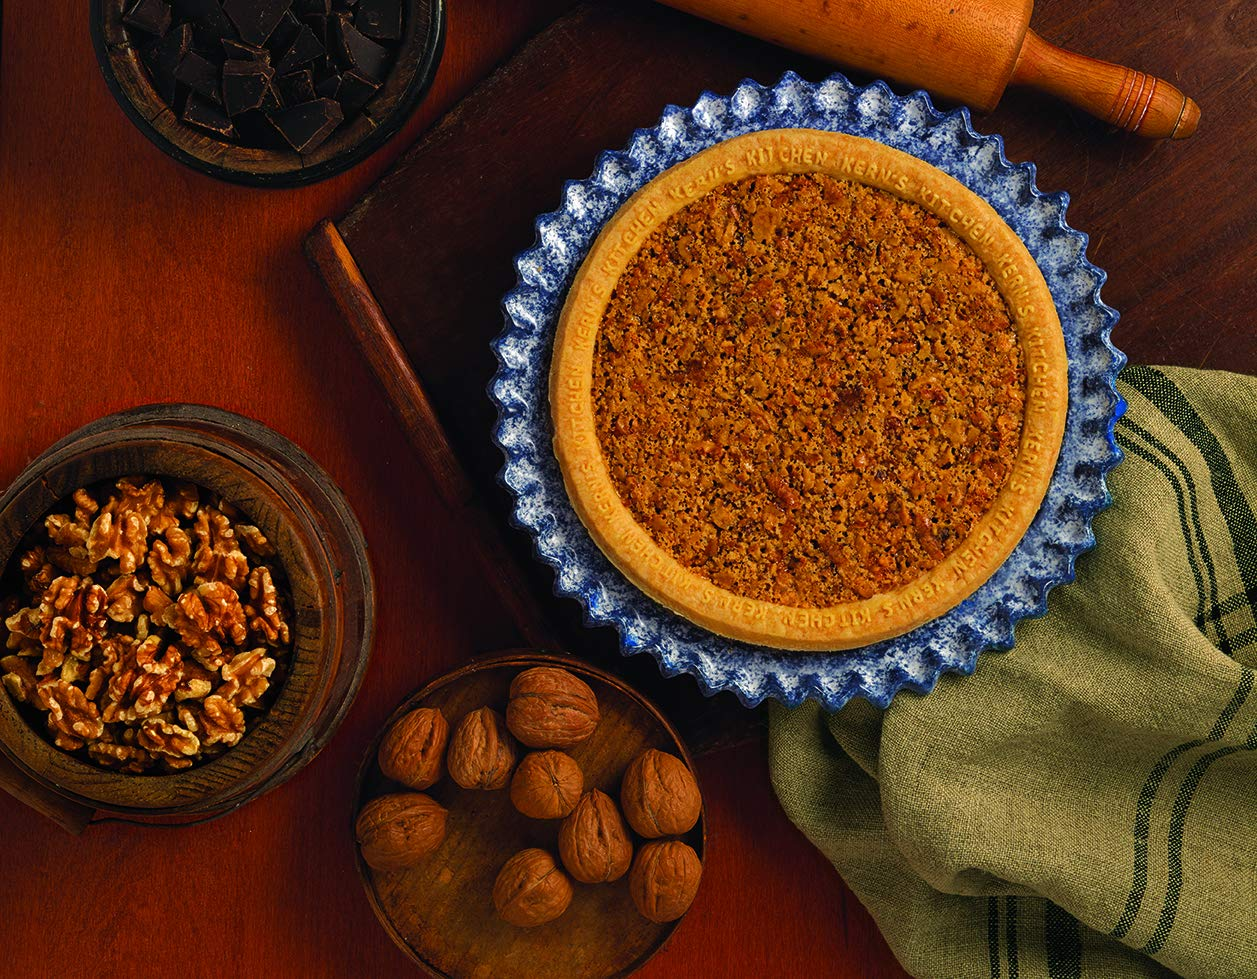 Derby-Pie chocolate nut pie - 4th Generation Family Owned Business - Shipped Frozen - Fully Baked - Serves 8